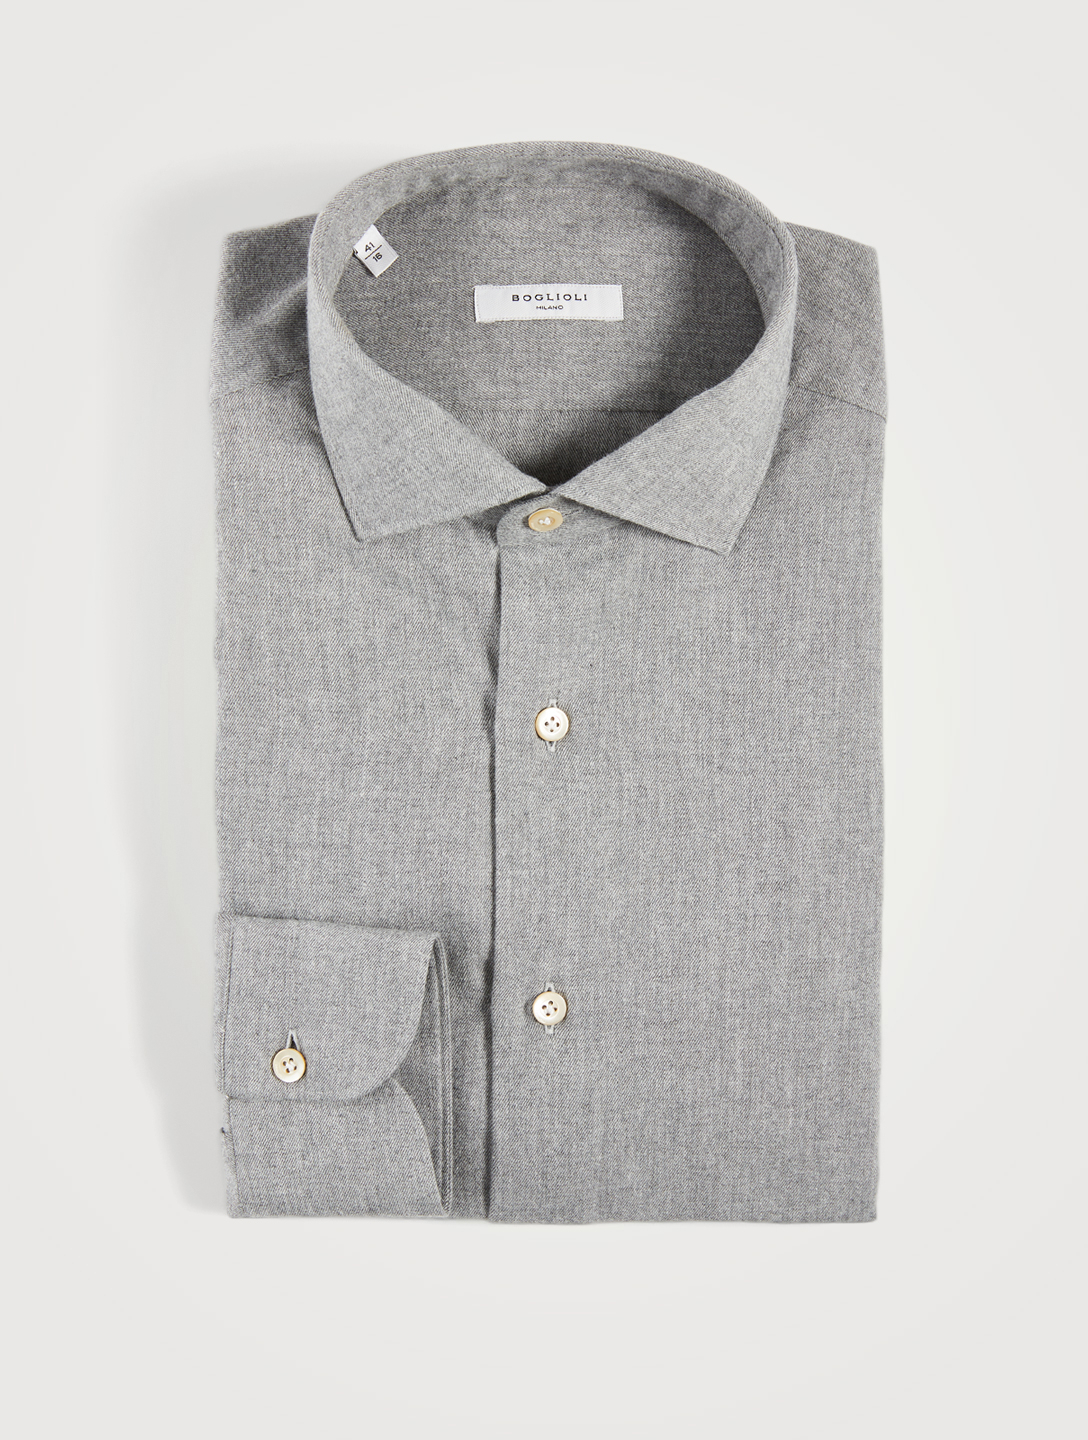 BOGLIOLI Flannel Slim-Fit Shirt Men's Grey